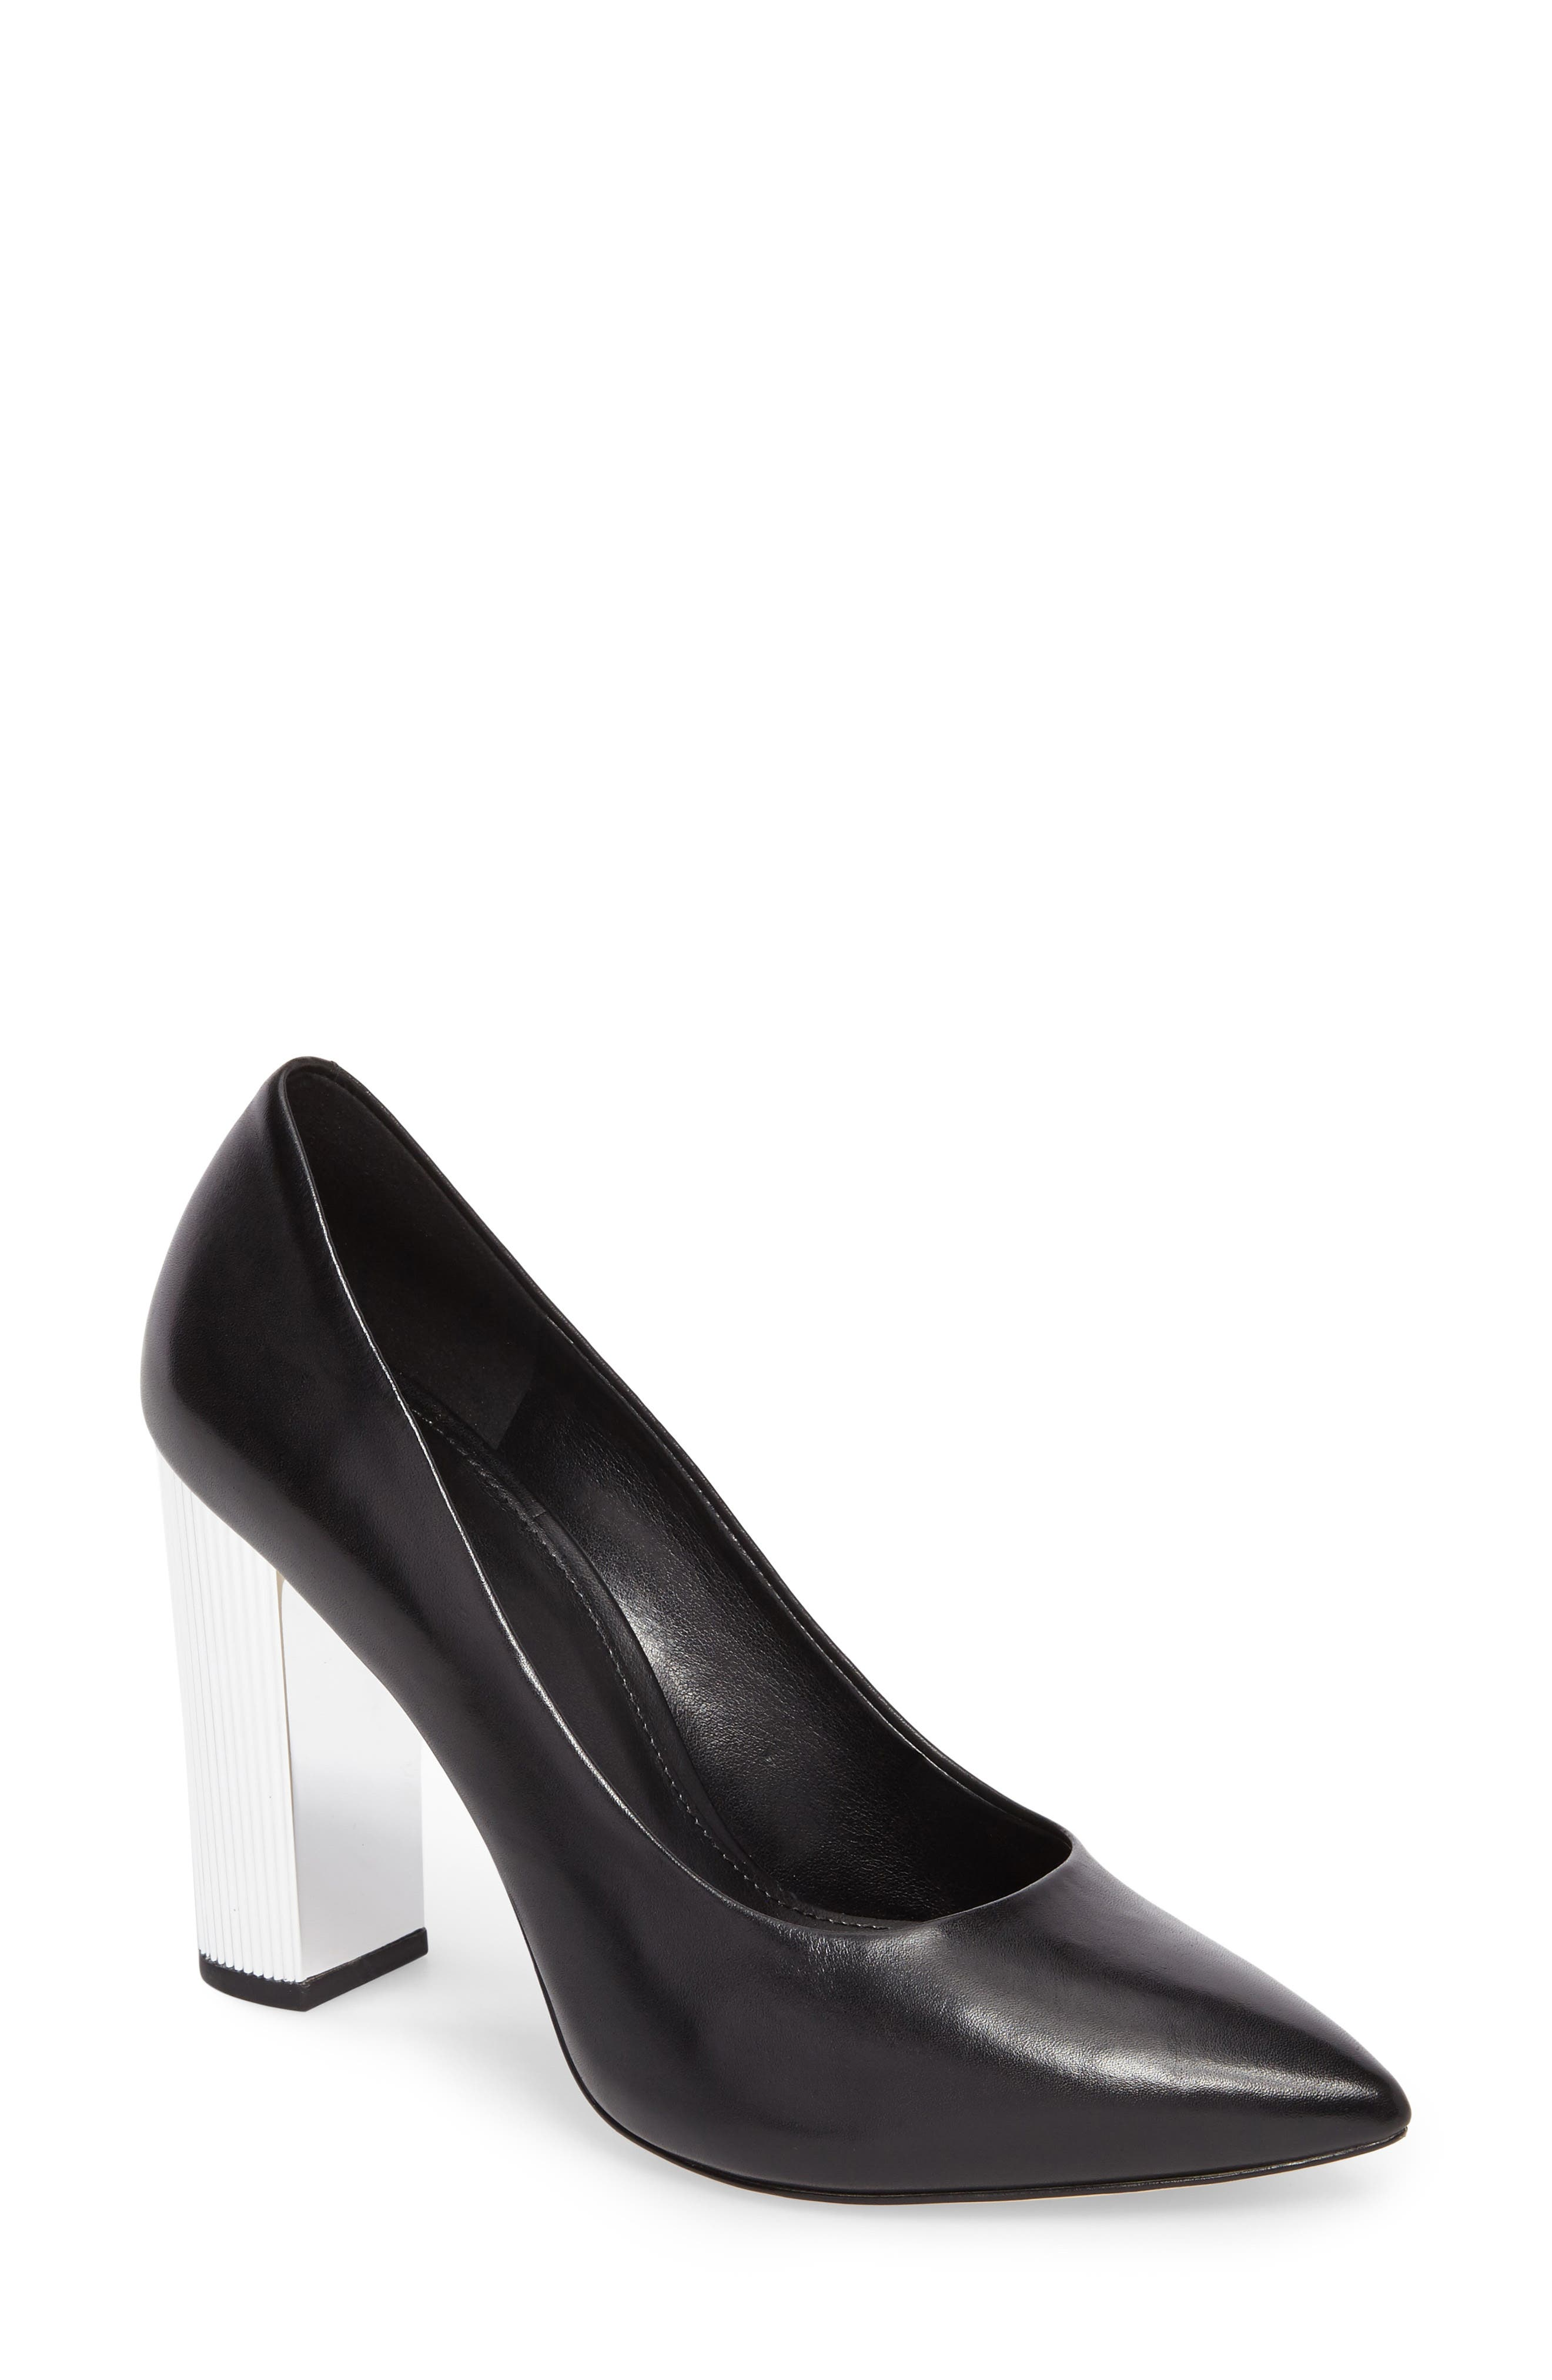 Paloma Metallic Heel Pump,                             Main thumbnail 1, color,                             001